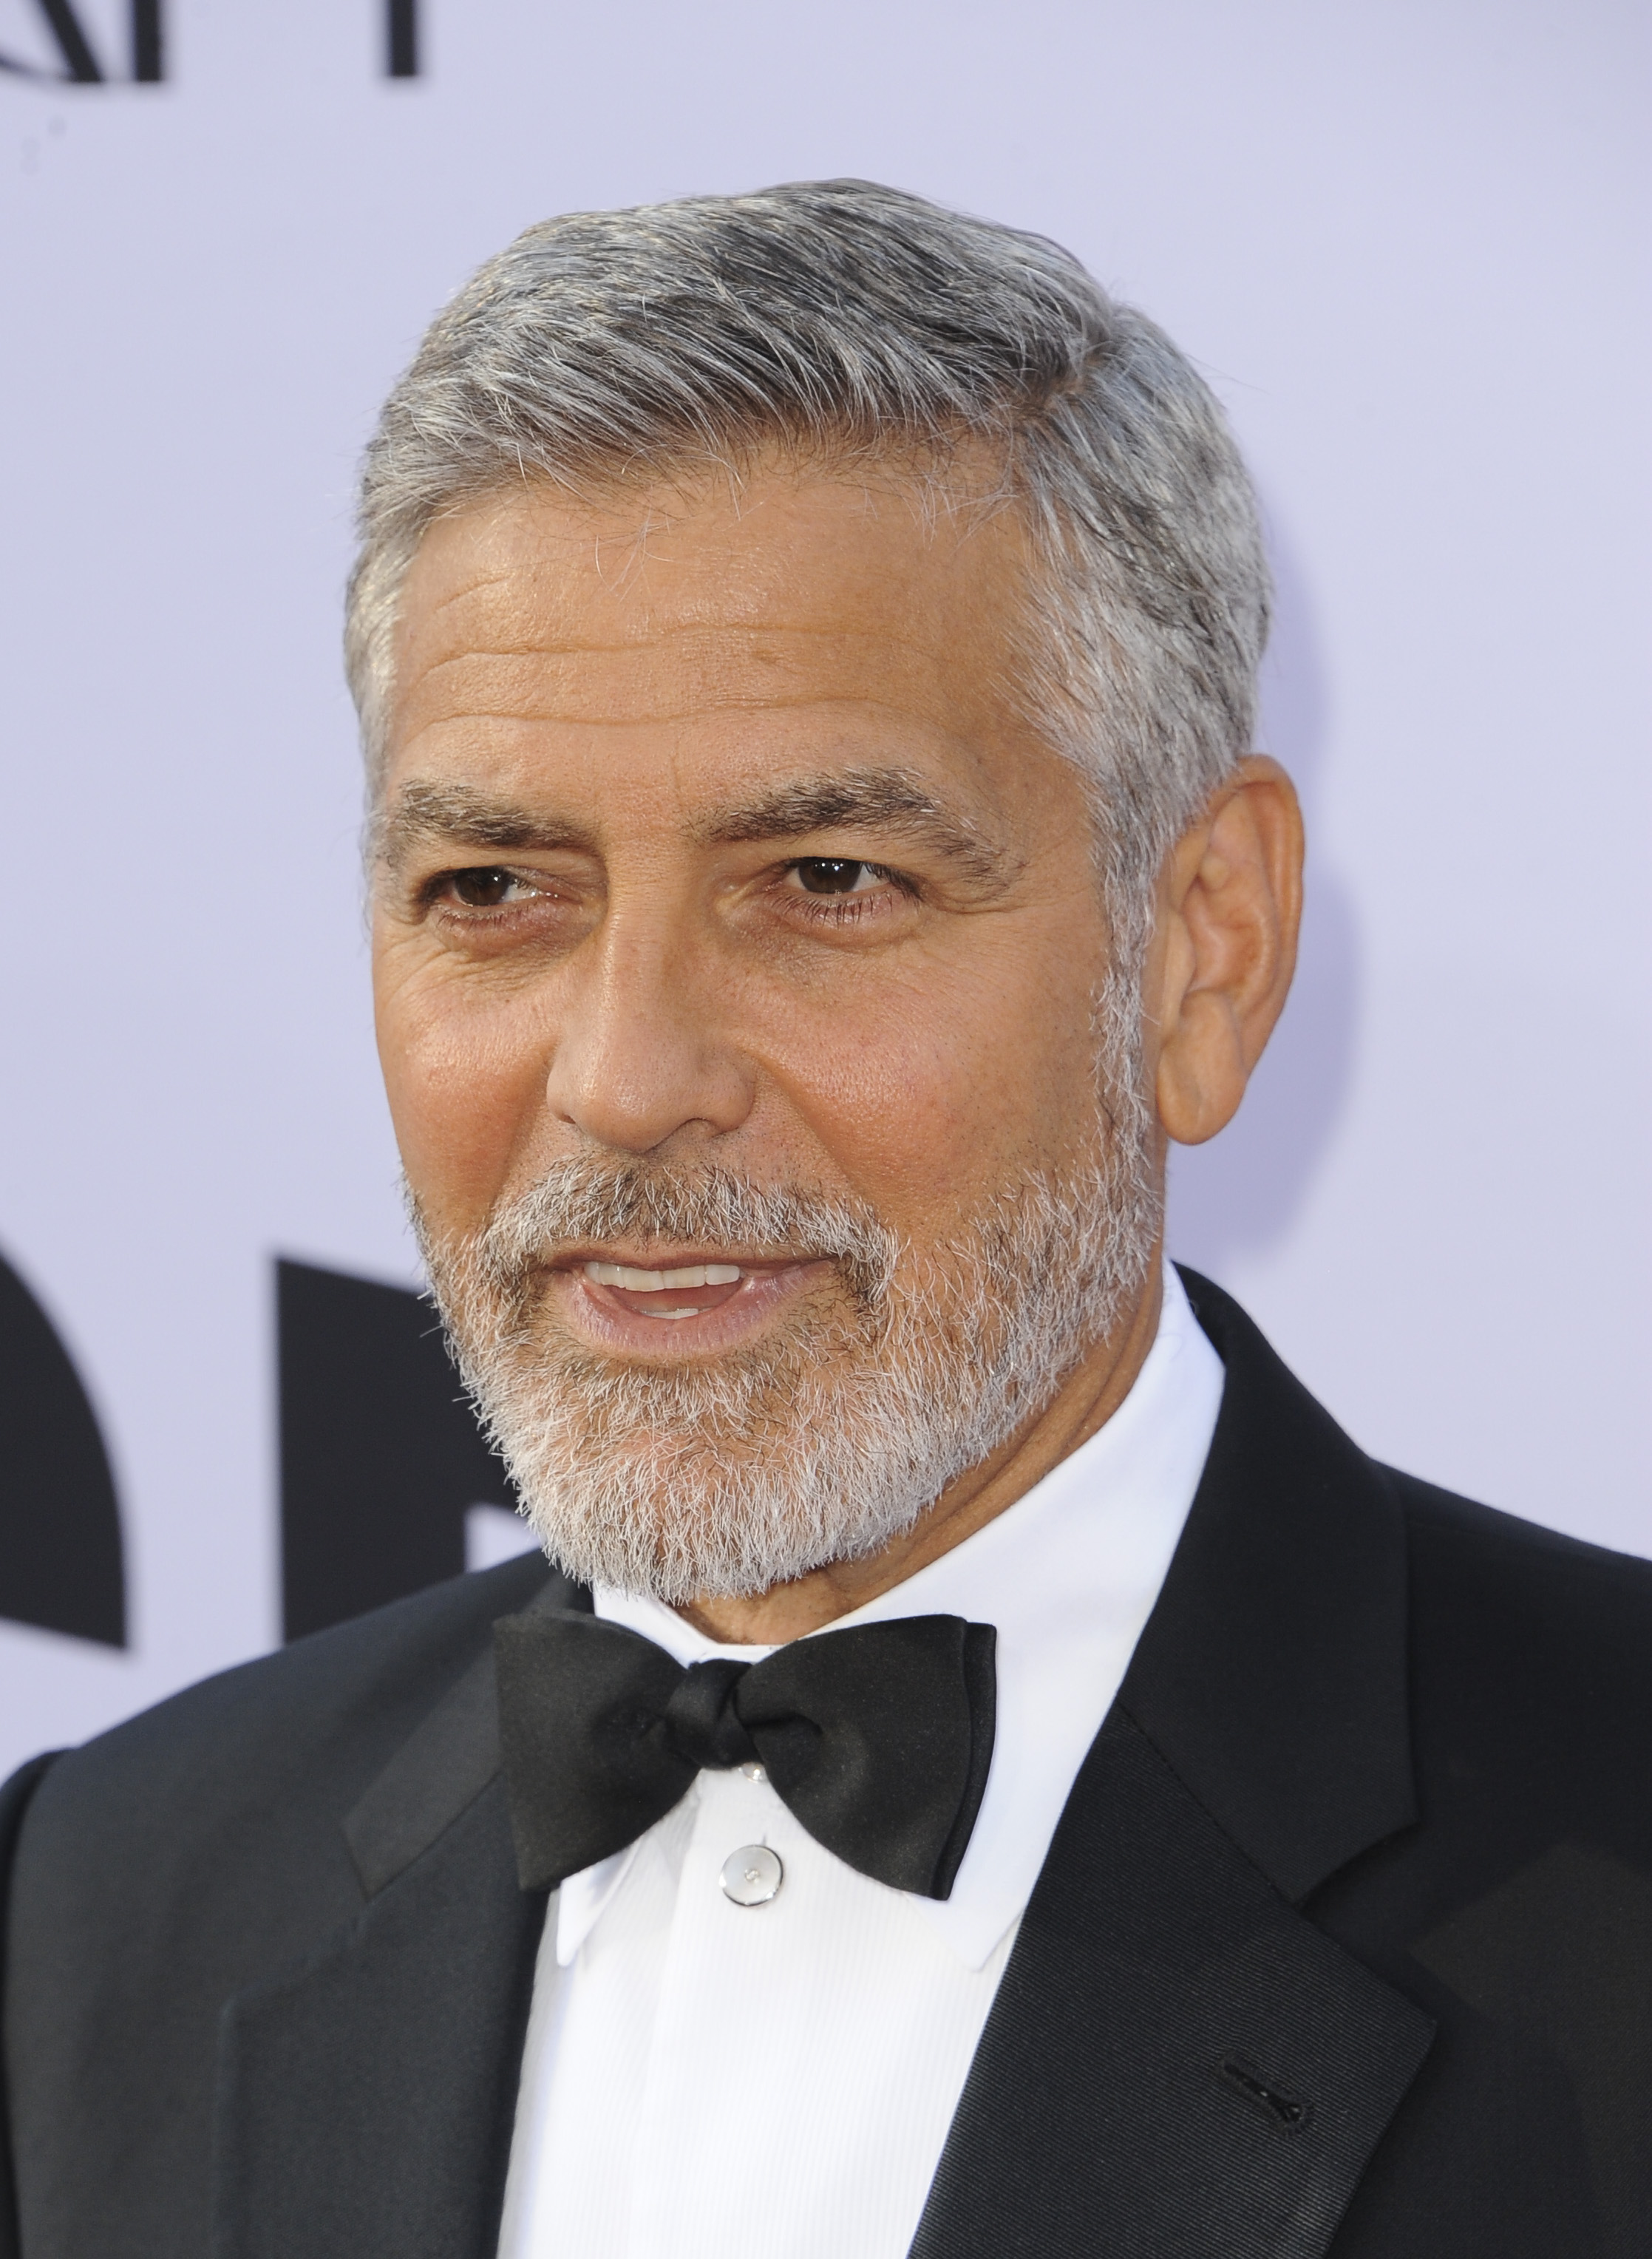 George Clooney at the 46th AFI Life Achievement Awards in Los Angeles, California on June 8, 2018. (Apega/WENN.com)